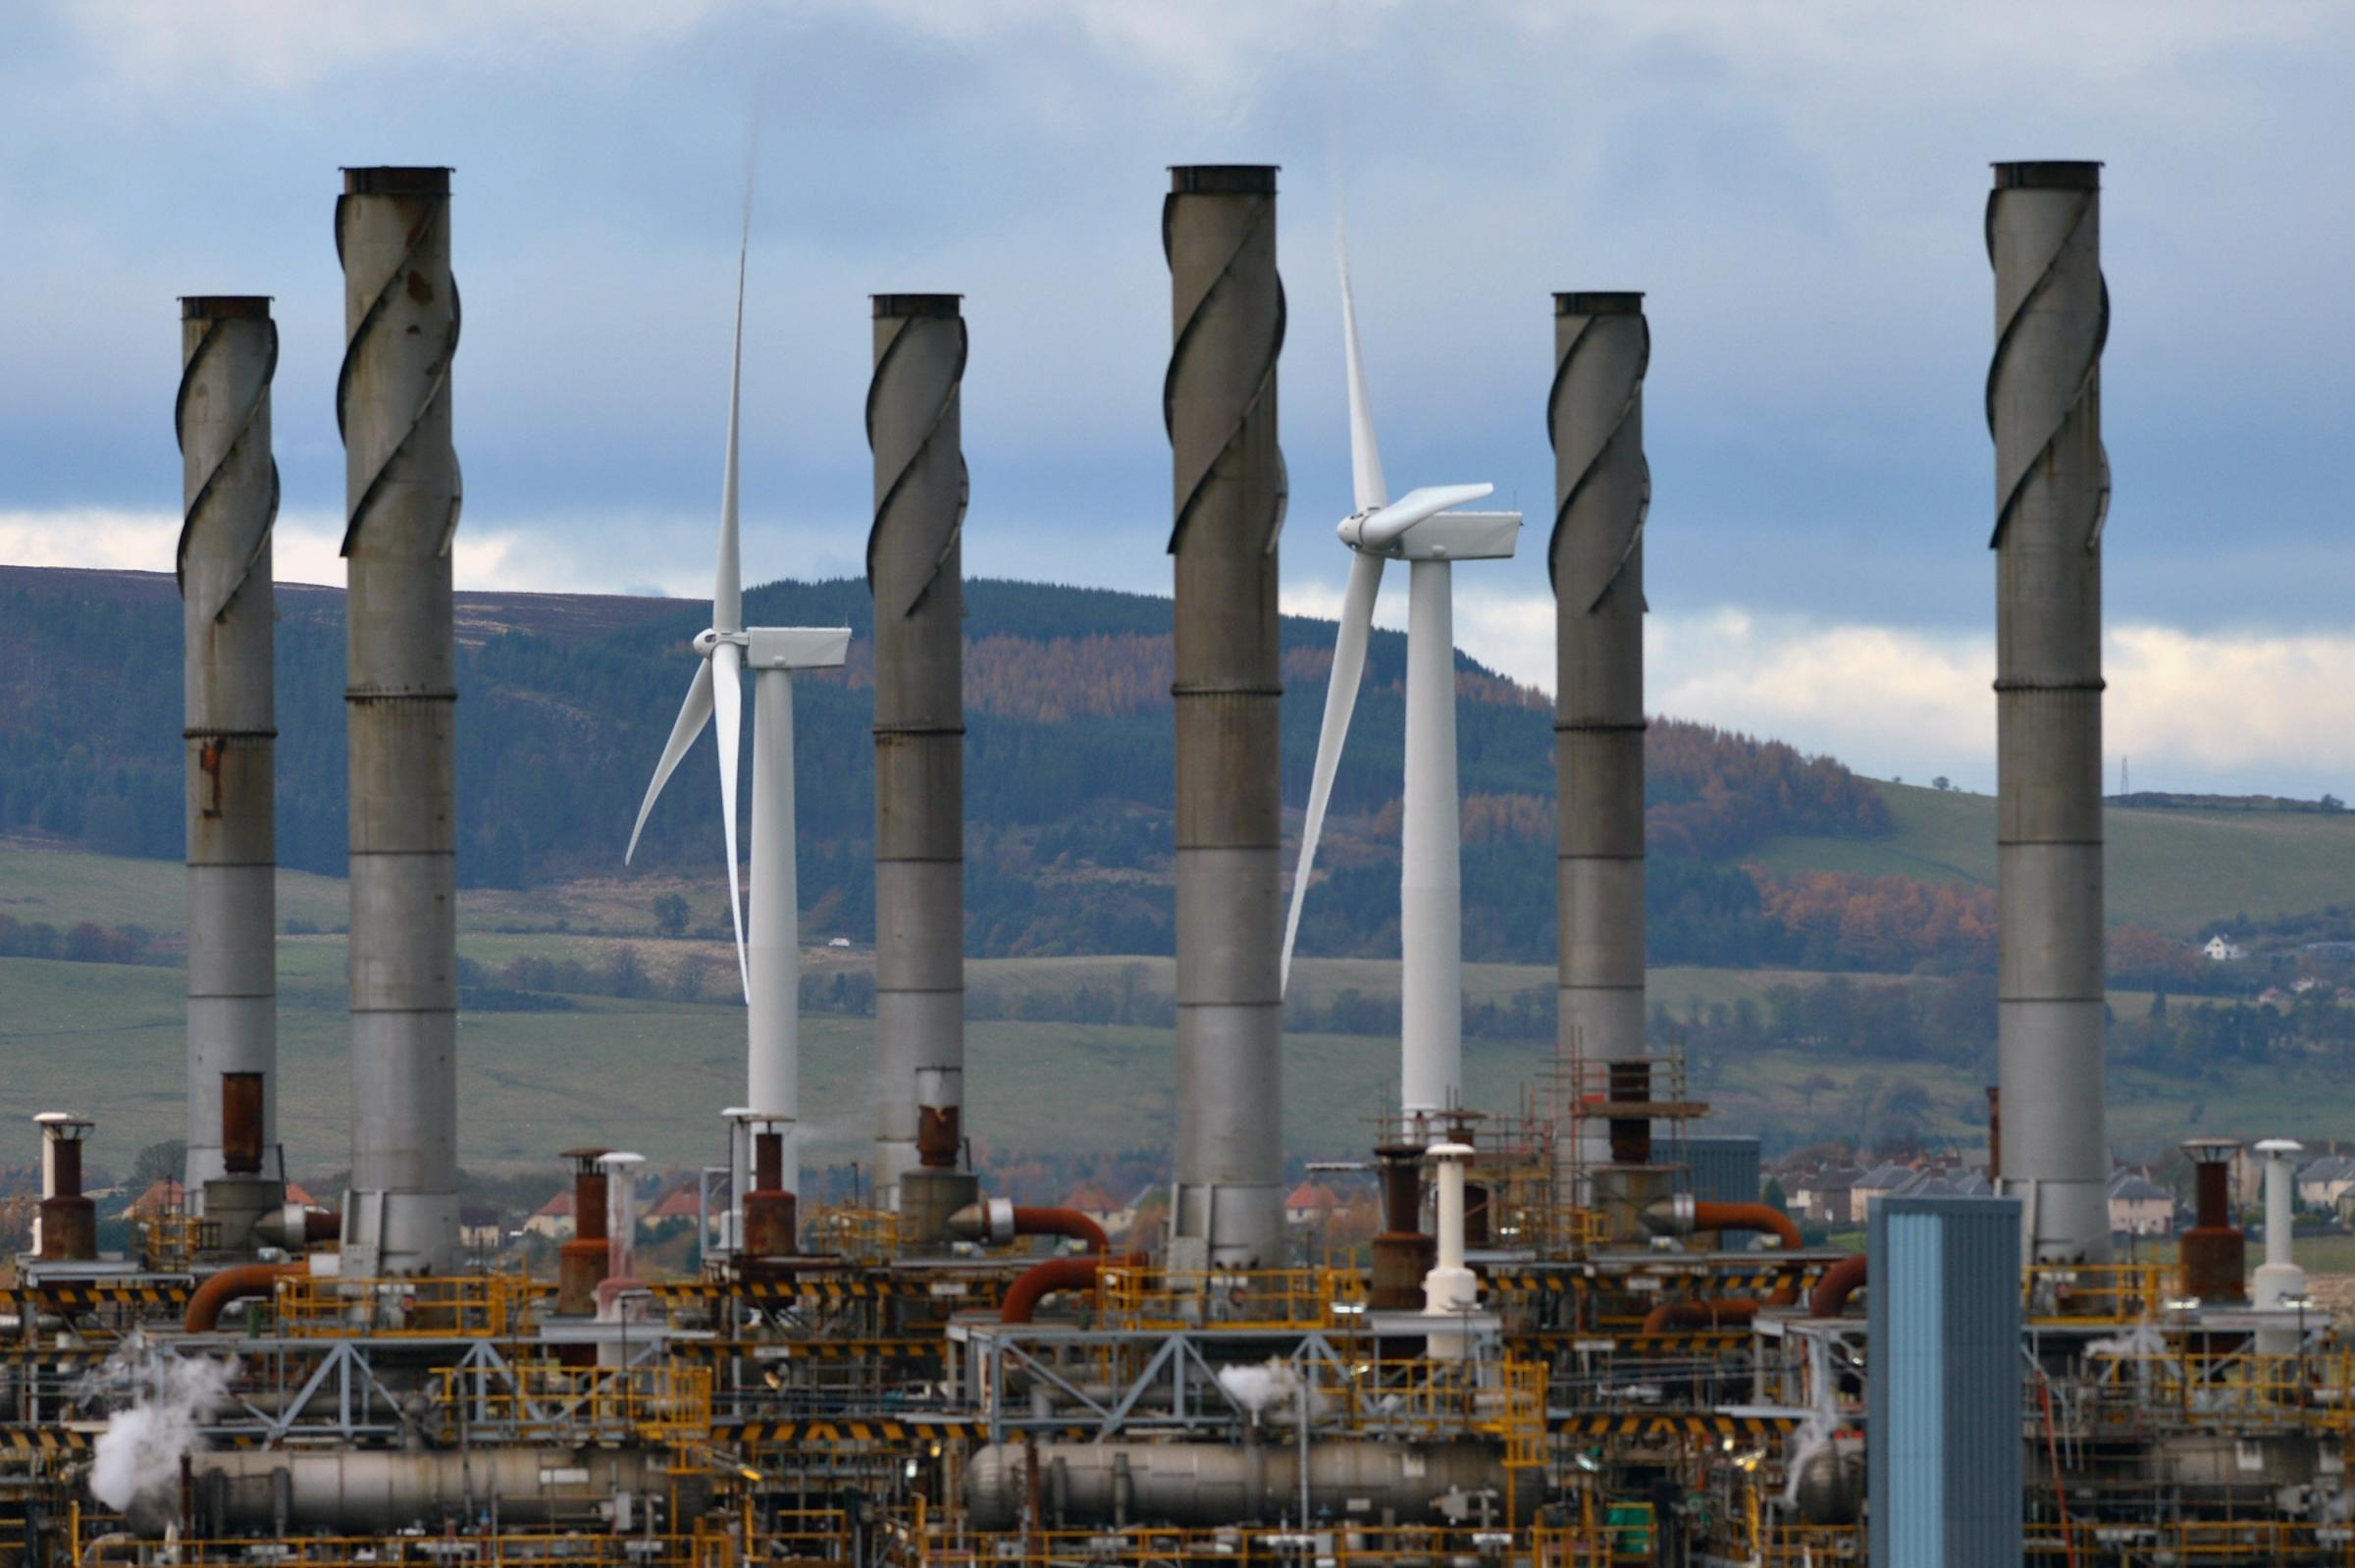 Climate change: Scotland is engaged in a futile fight